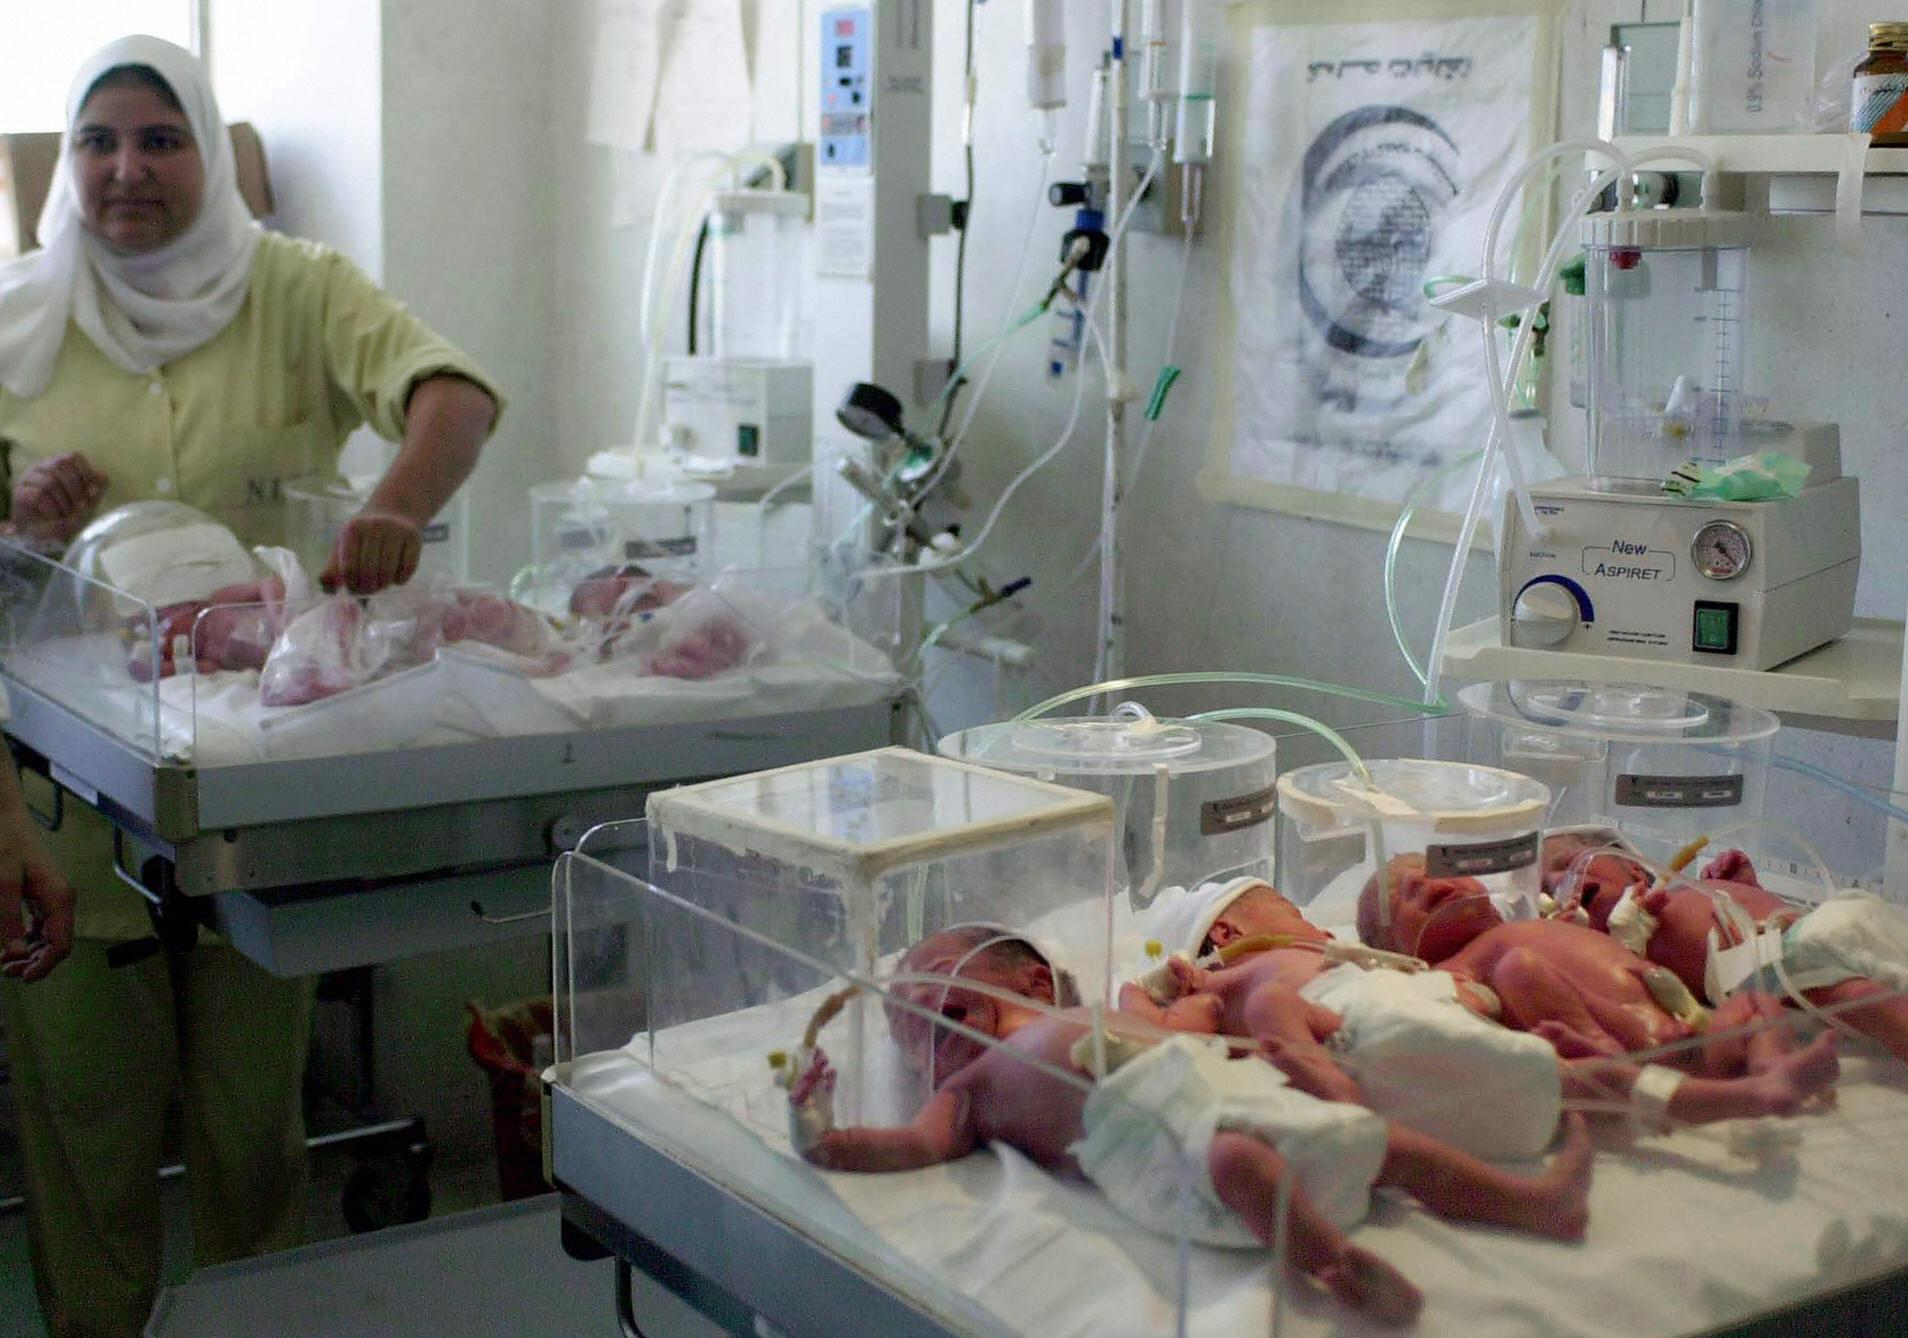 An Egyptian nurse monitors the newborn septuplets of a woman who gave birth to four boys and three girls at the hospital of the University of Alexandria on August 16, 2008. Not easy at all. Egypt's population rose to almost 93 million earlier this year; demographers project that the country's total will be 150 million by 2050.